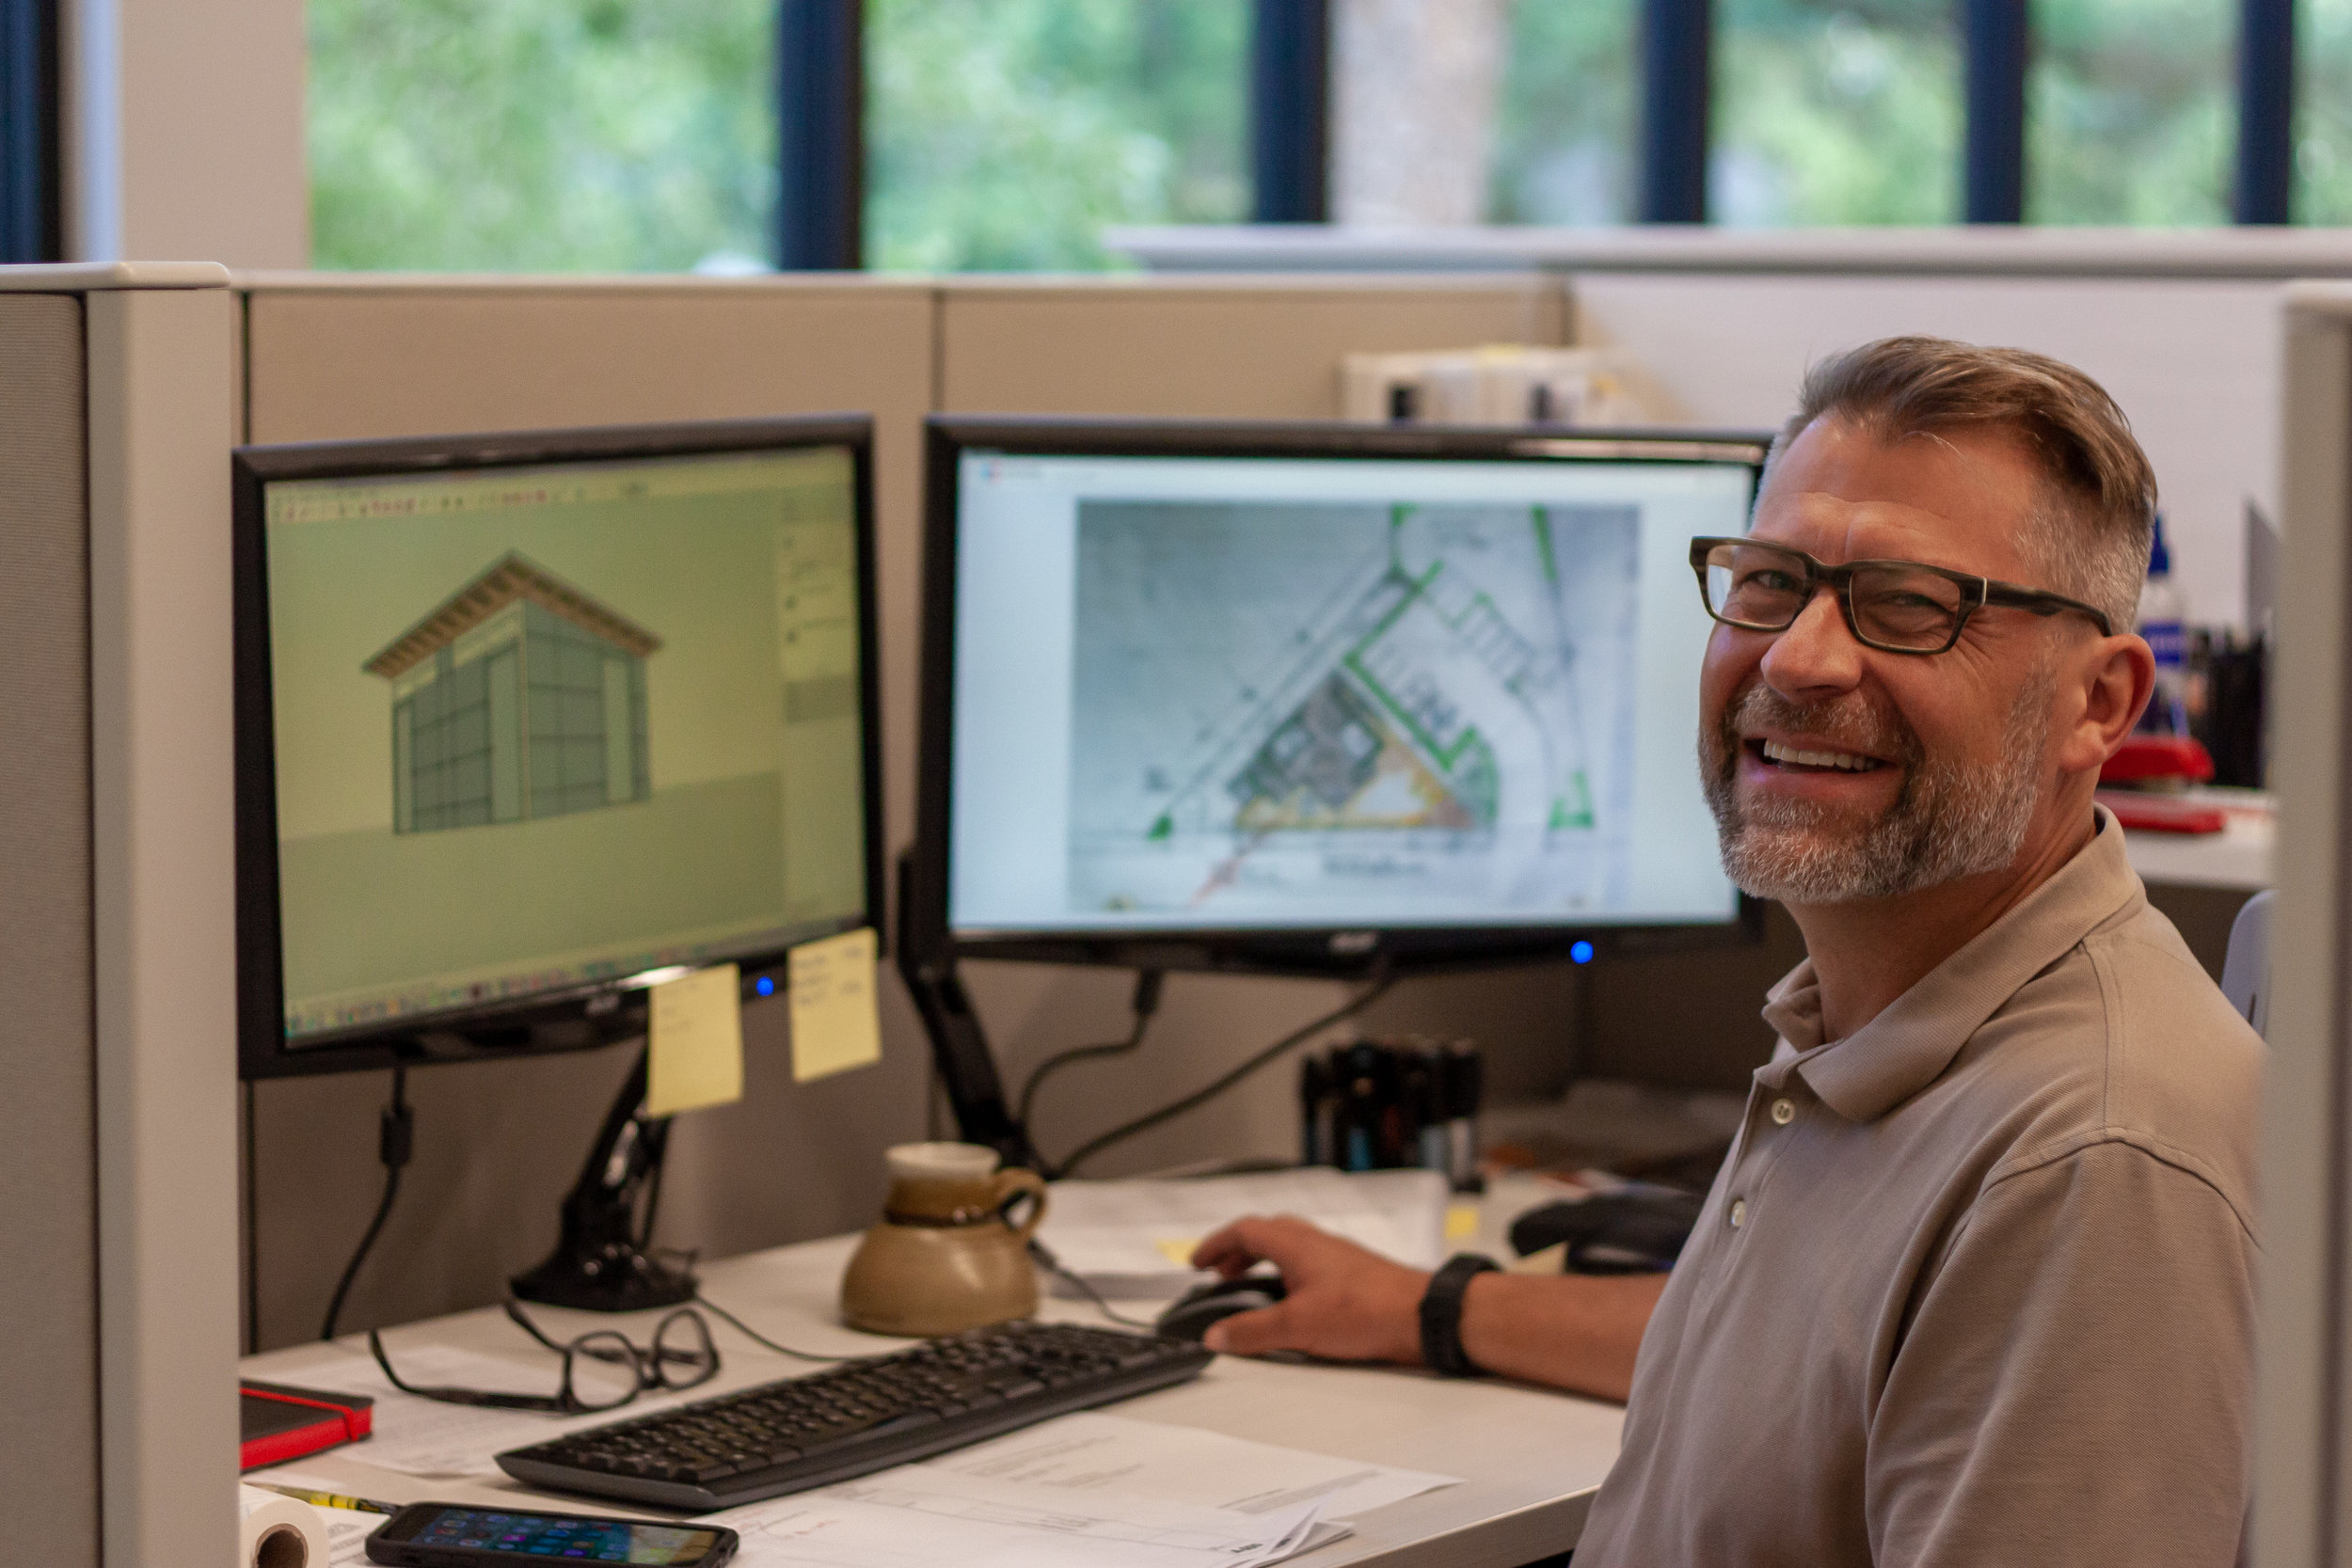 """""""The focus on making a meaningful impact for the community through our work is exciting. It's good to be a part of a team with a common goal."""" - brad S."""